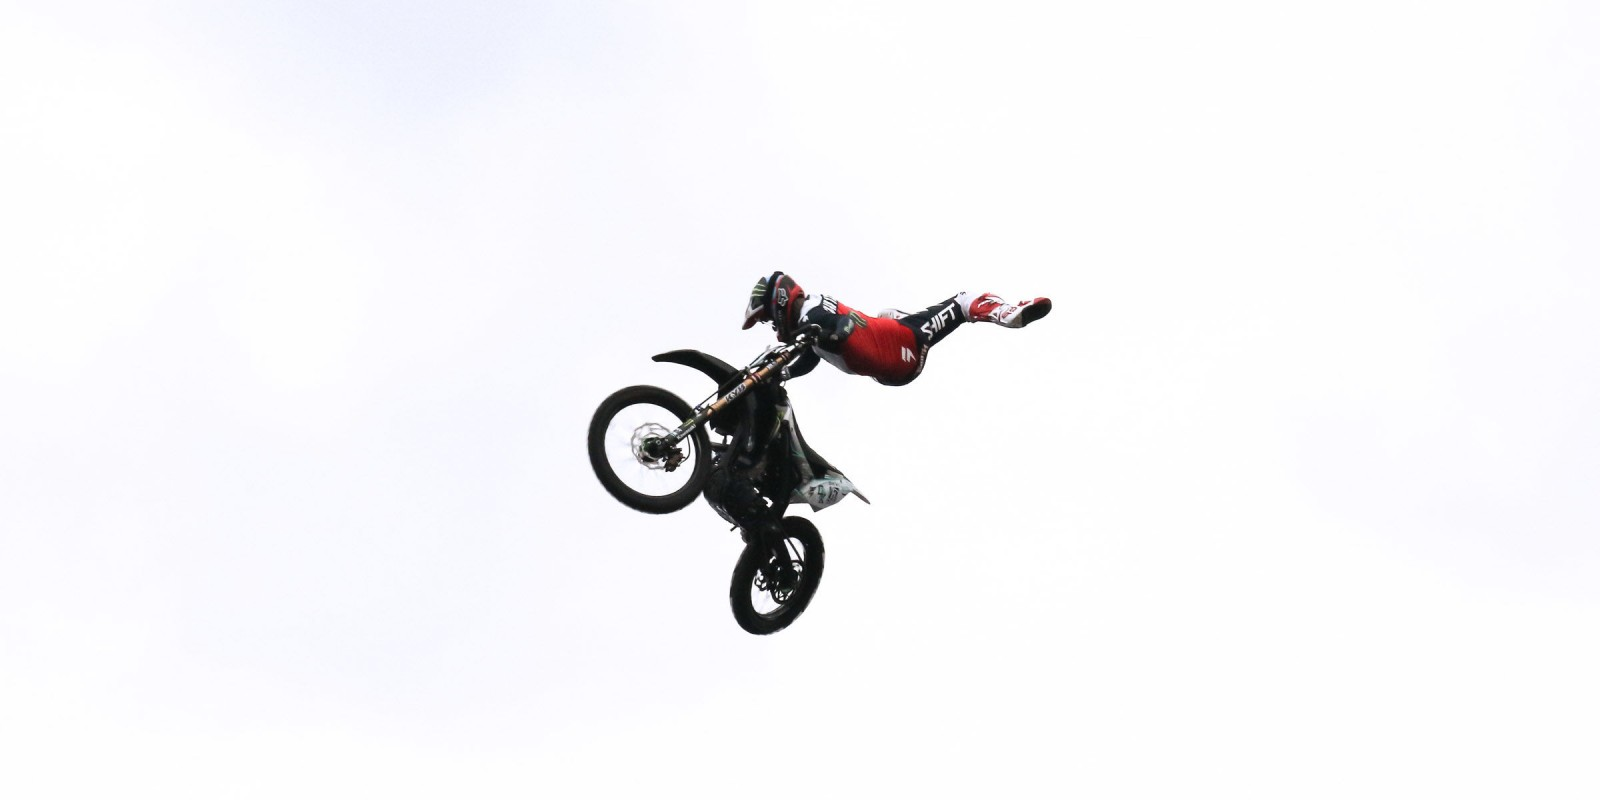 Jeremy Stenberg at the 2017 FMX of Odaiba